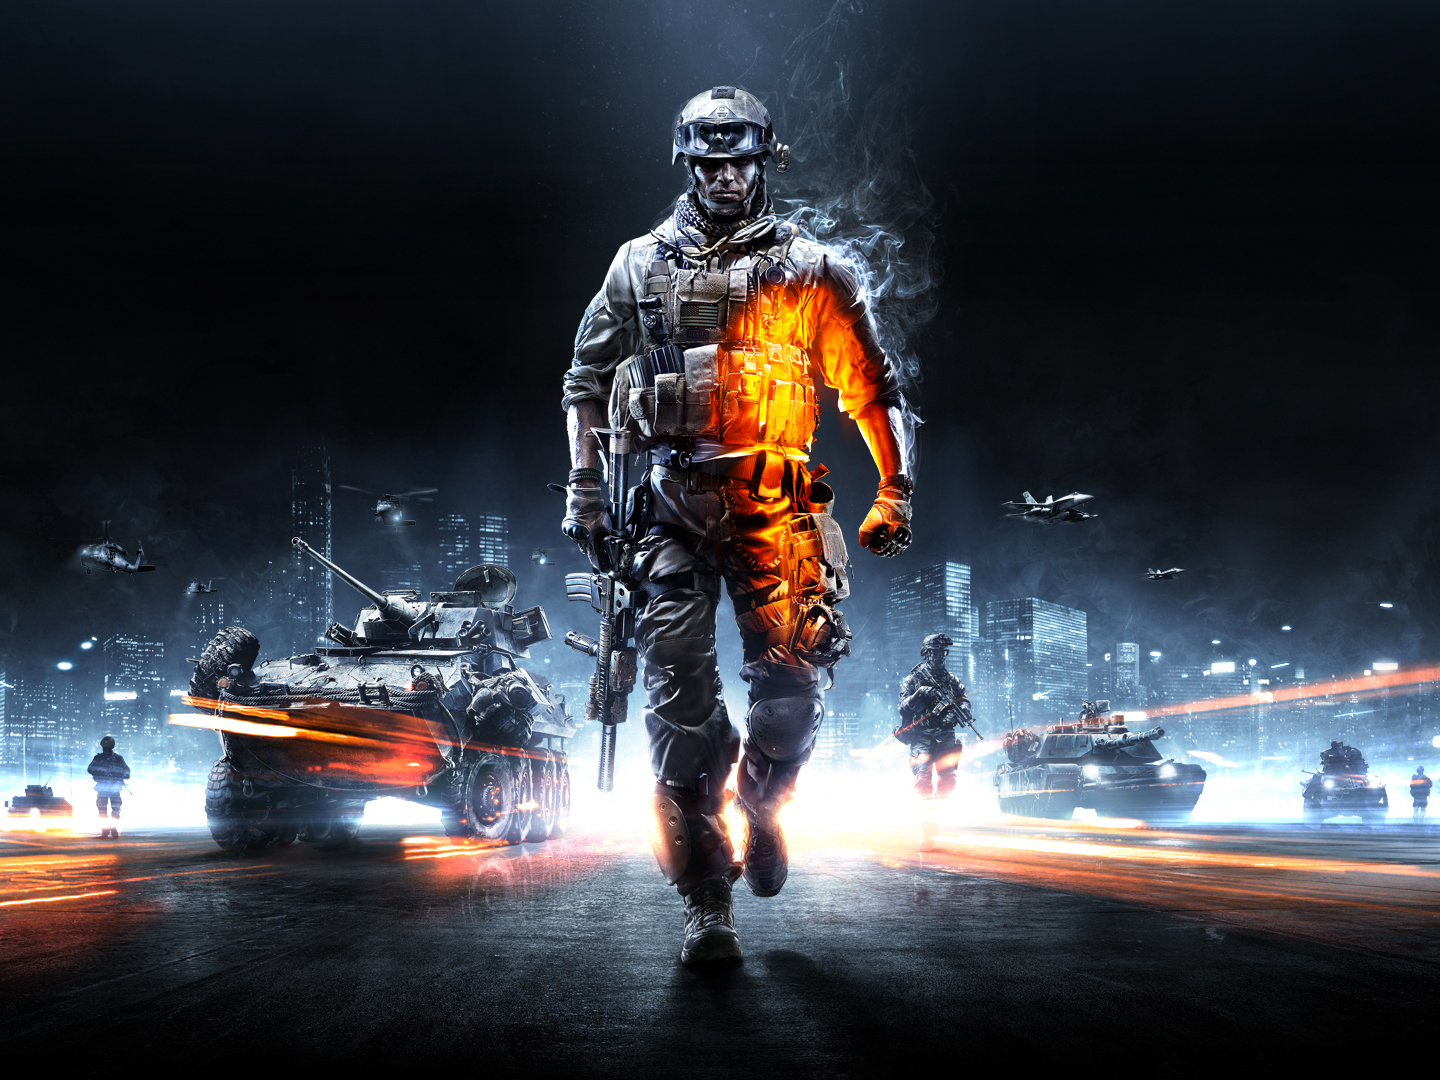 Battlefield 3 Walli 4x3 Clean